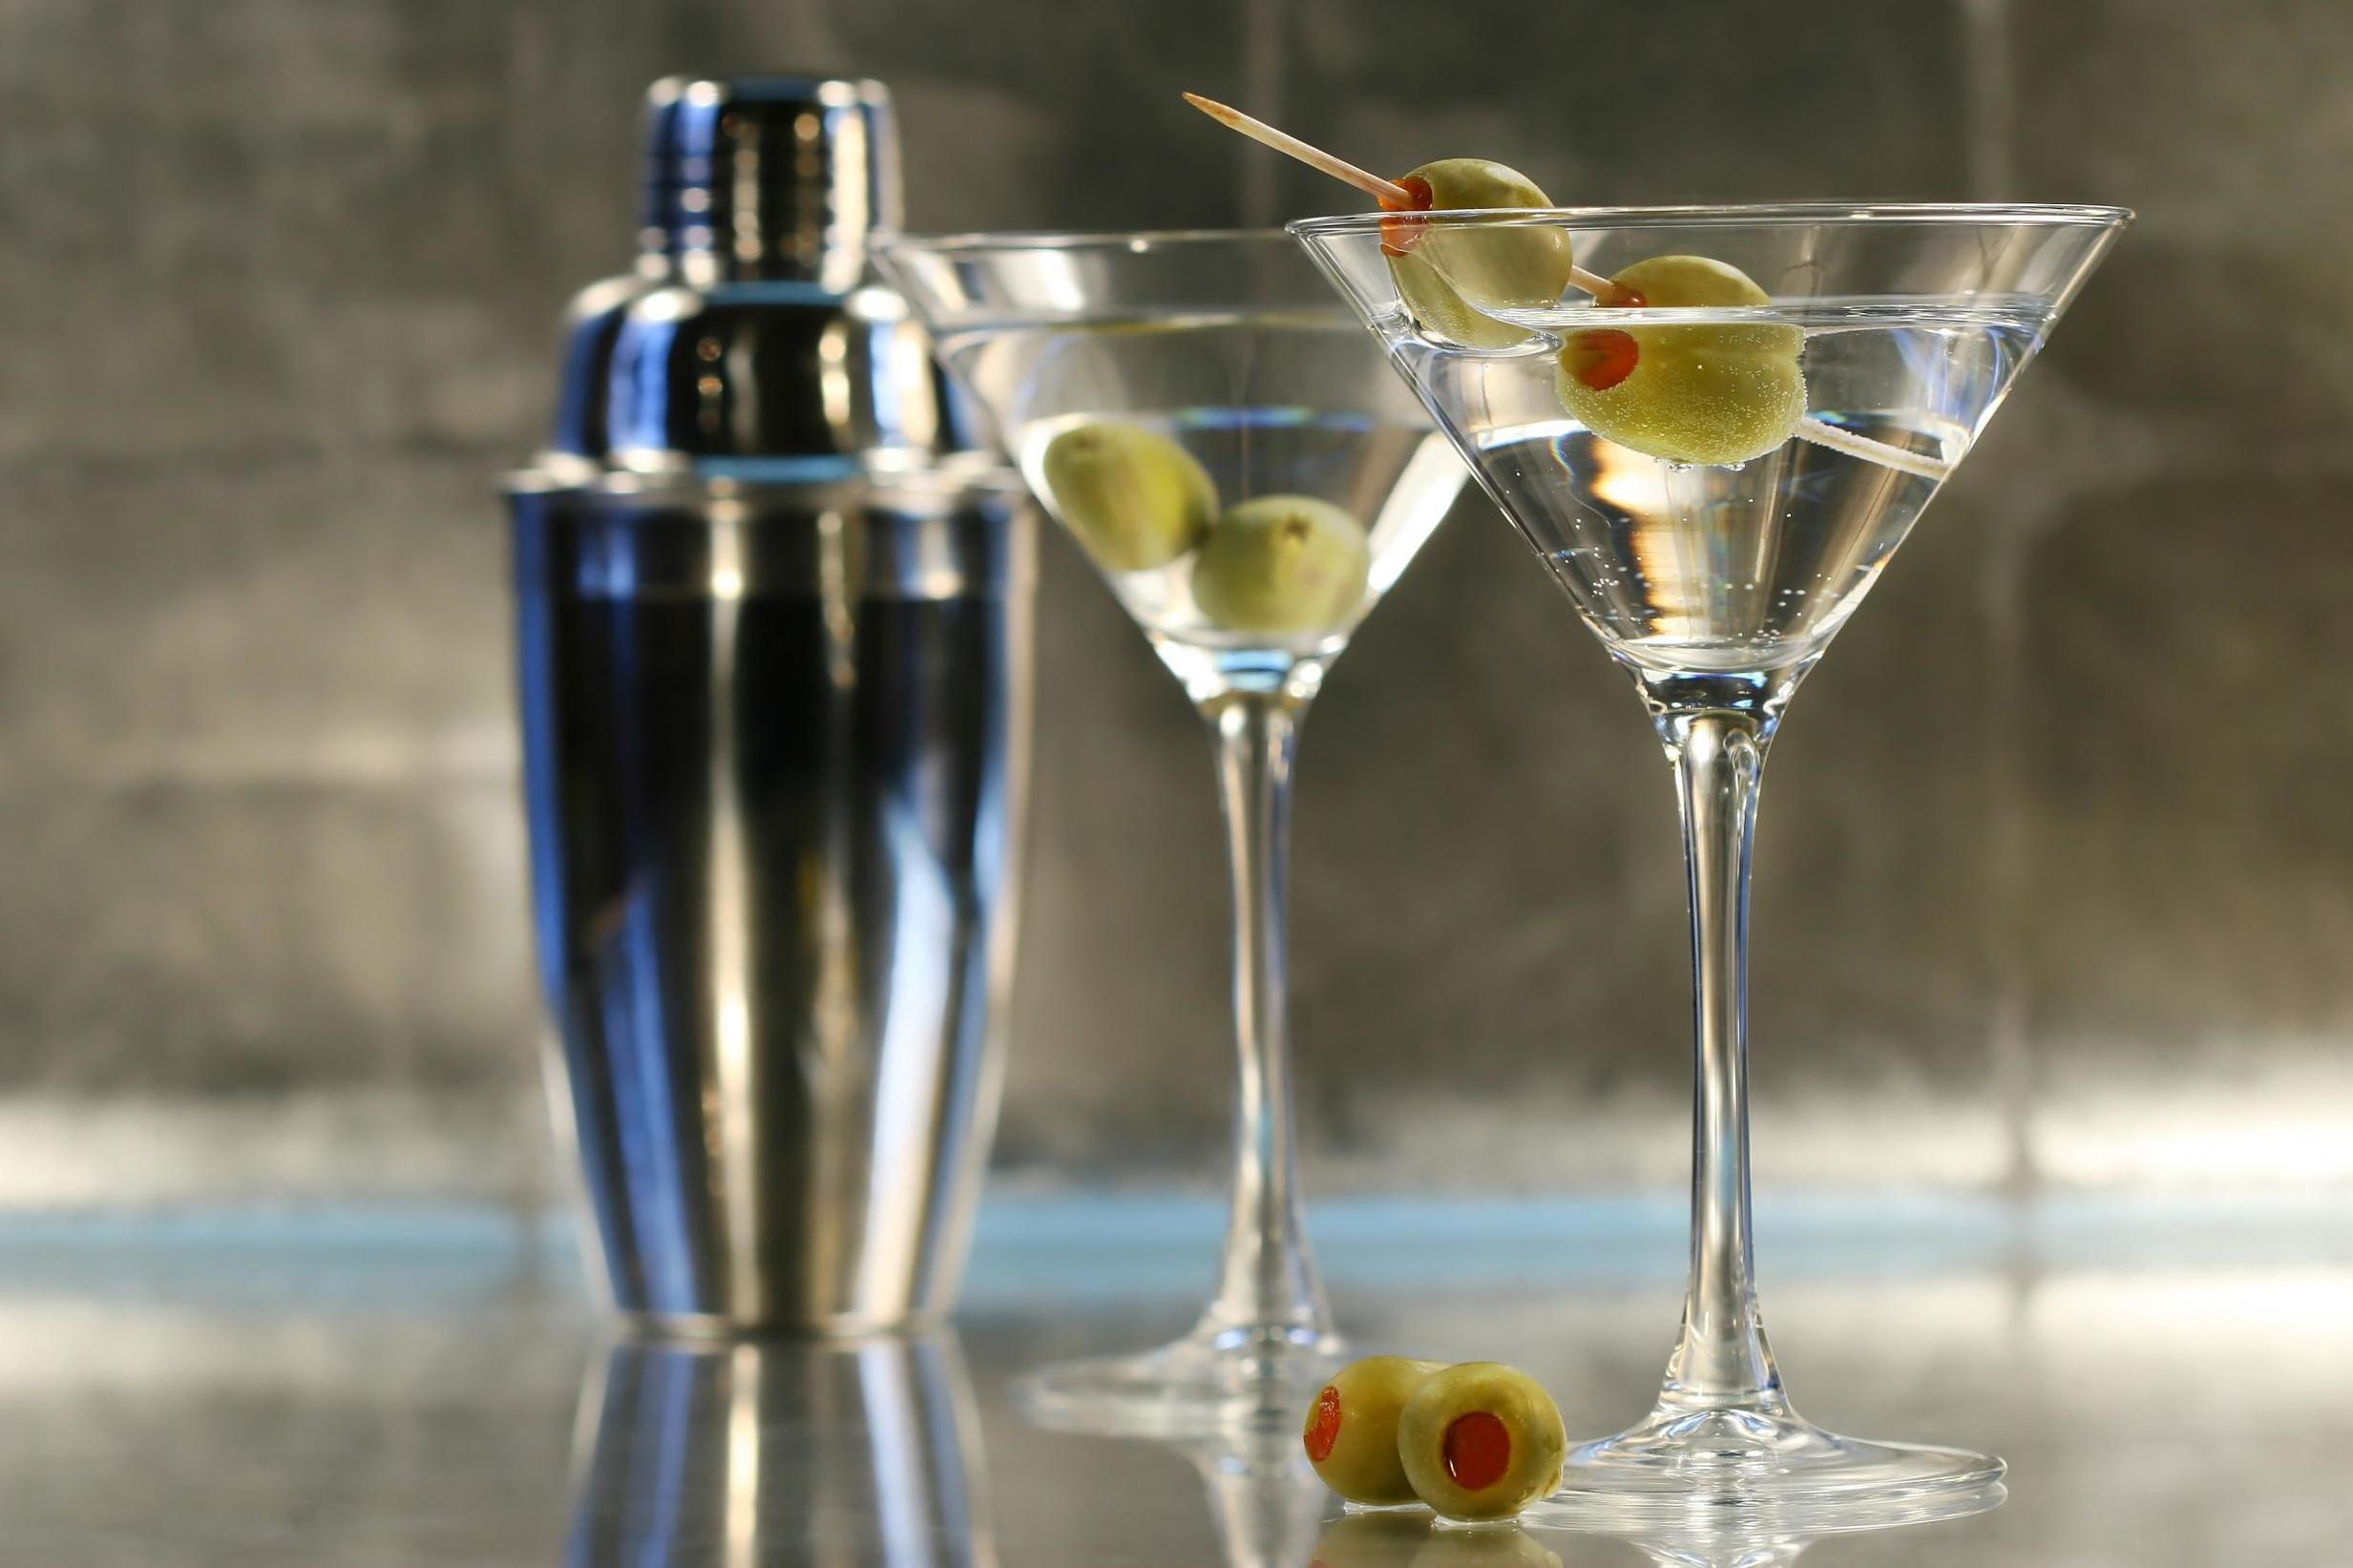 The correct way to make a vodka martini, according to cocktail expert